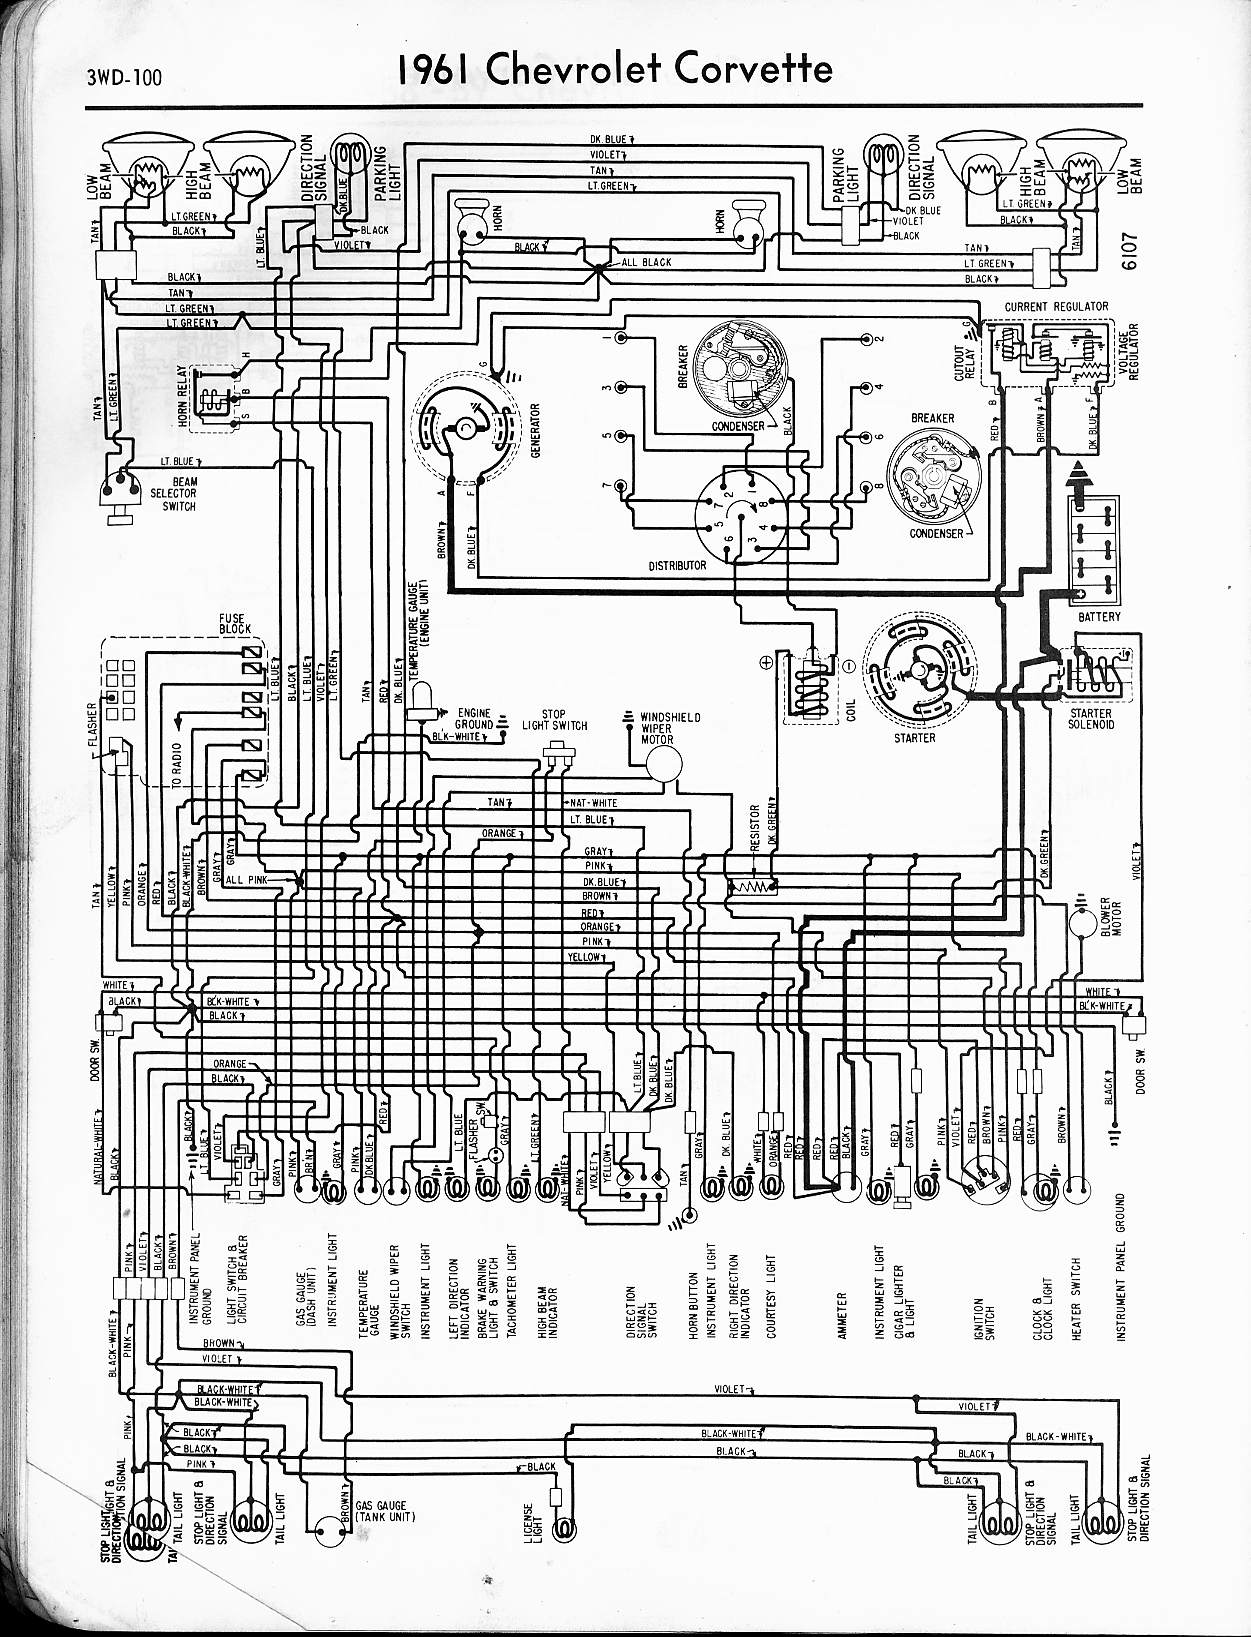 MWireChev61_3WD-100  Corvair Wiring Diagram on 1965 thunderbird wiring diagram, 1964 chevelle wiring diagram, 1961 thunderbird wiring diagram, 1960 thunderbird wiring diagram, 1962 corvair firing order, 1953 ford truck wiring diagram, 1965 lincoln wiring diagram, 1955 pontiac wiring diagram,